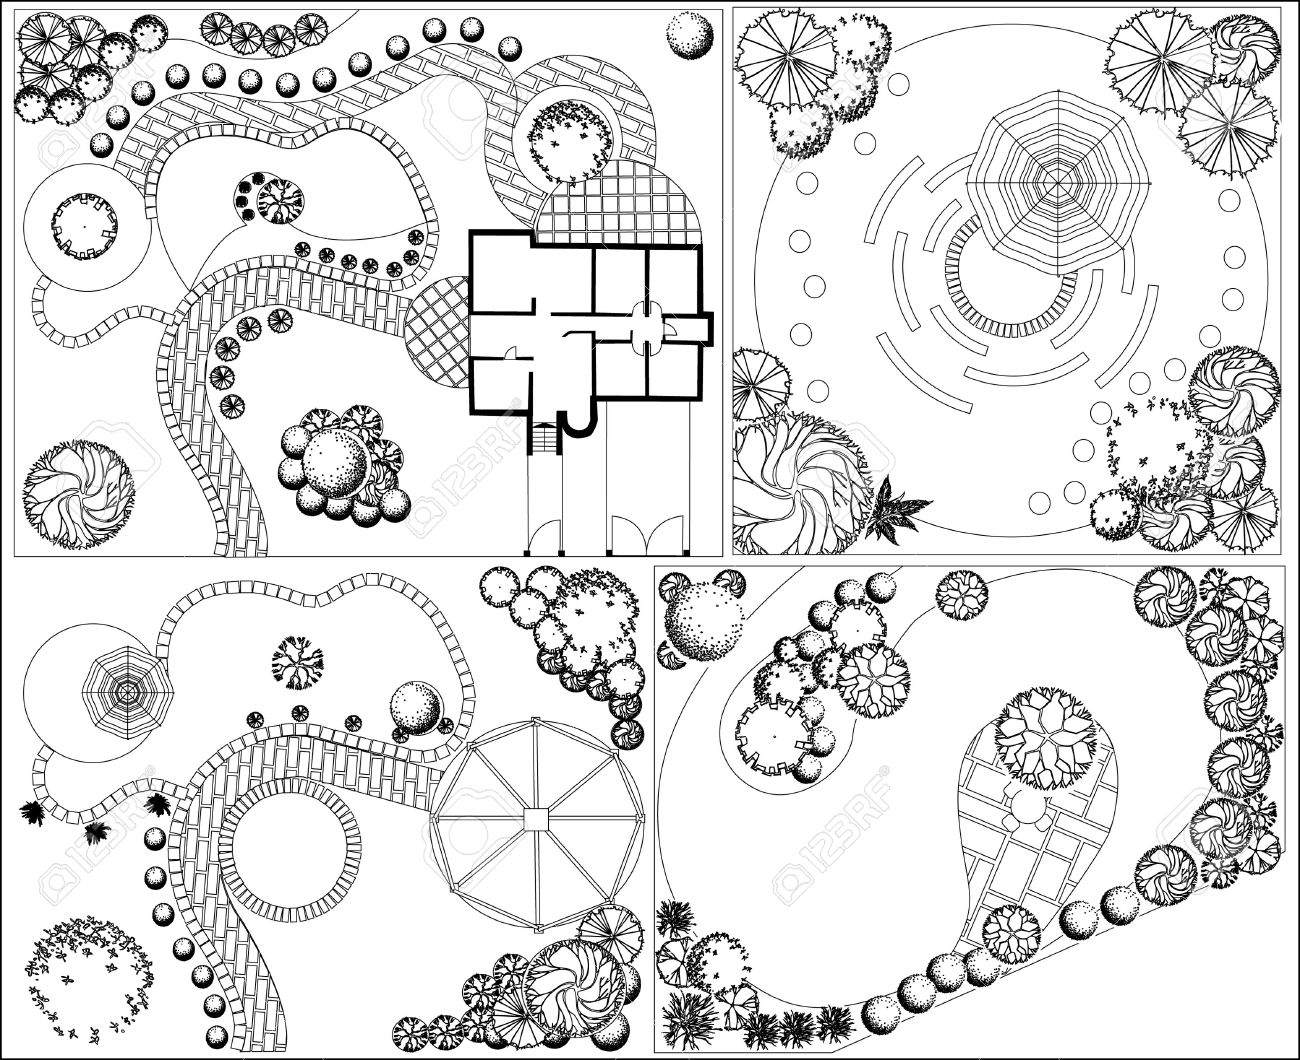 Collections Od Landscape Plan With Treetop Symbols Black And